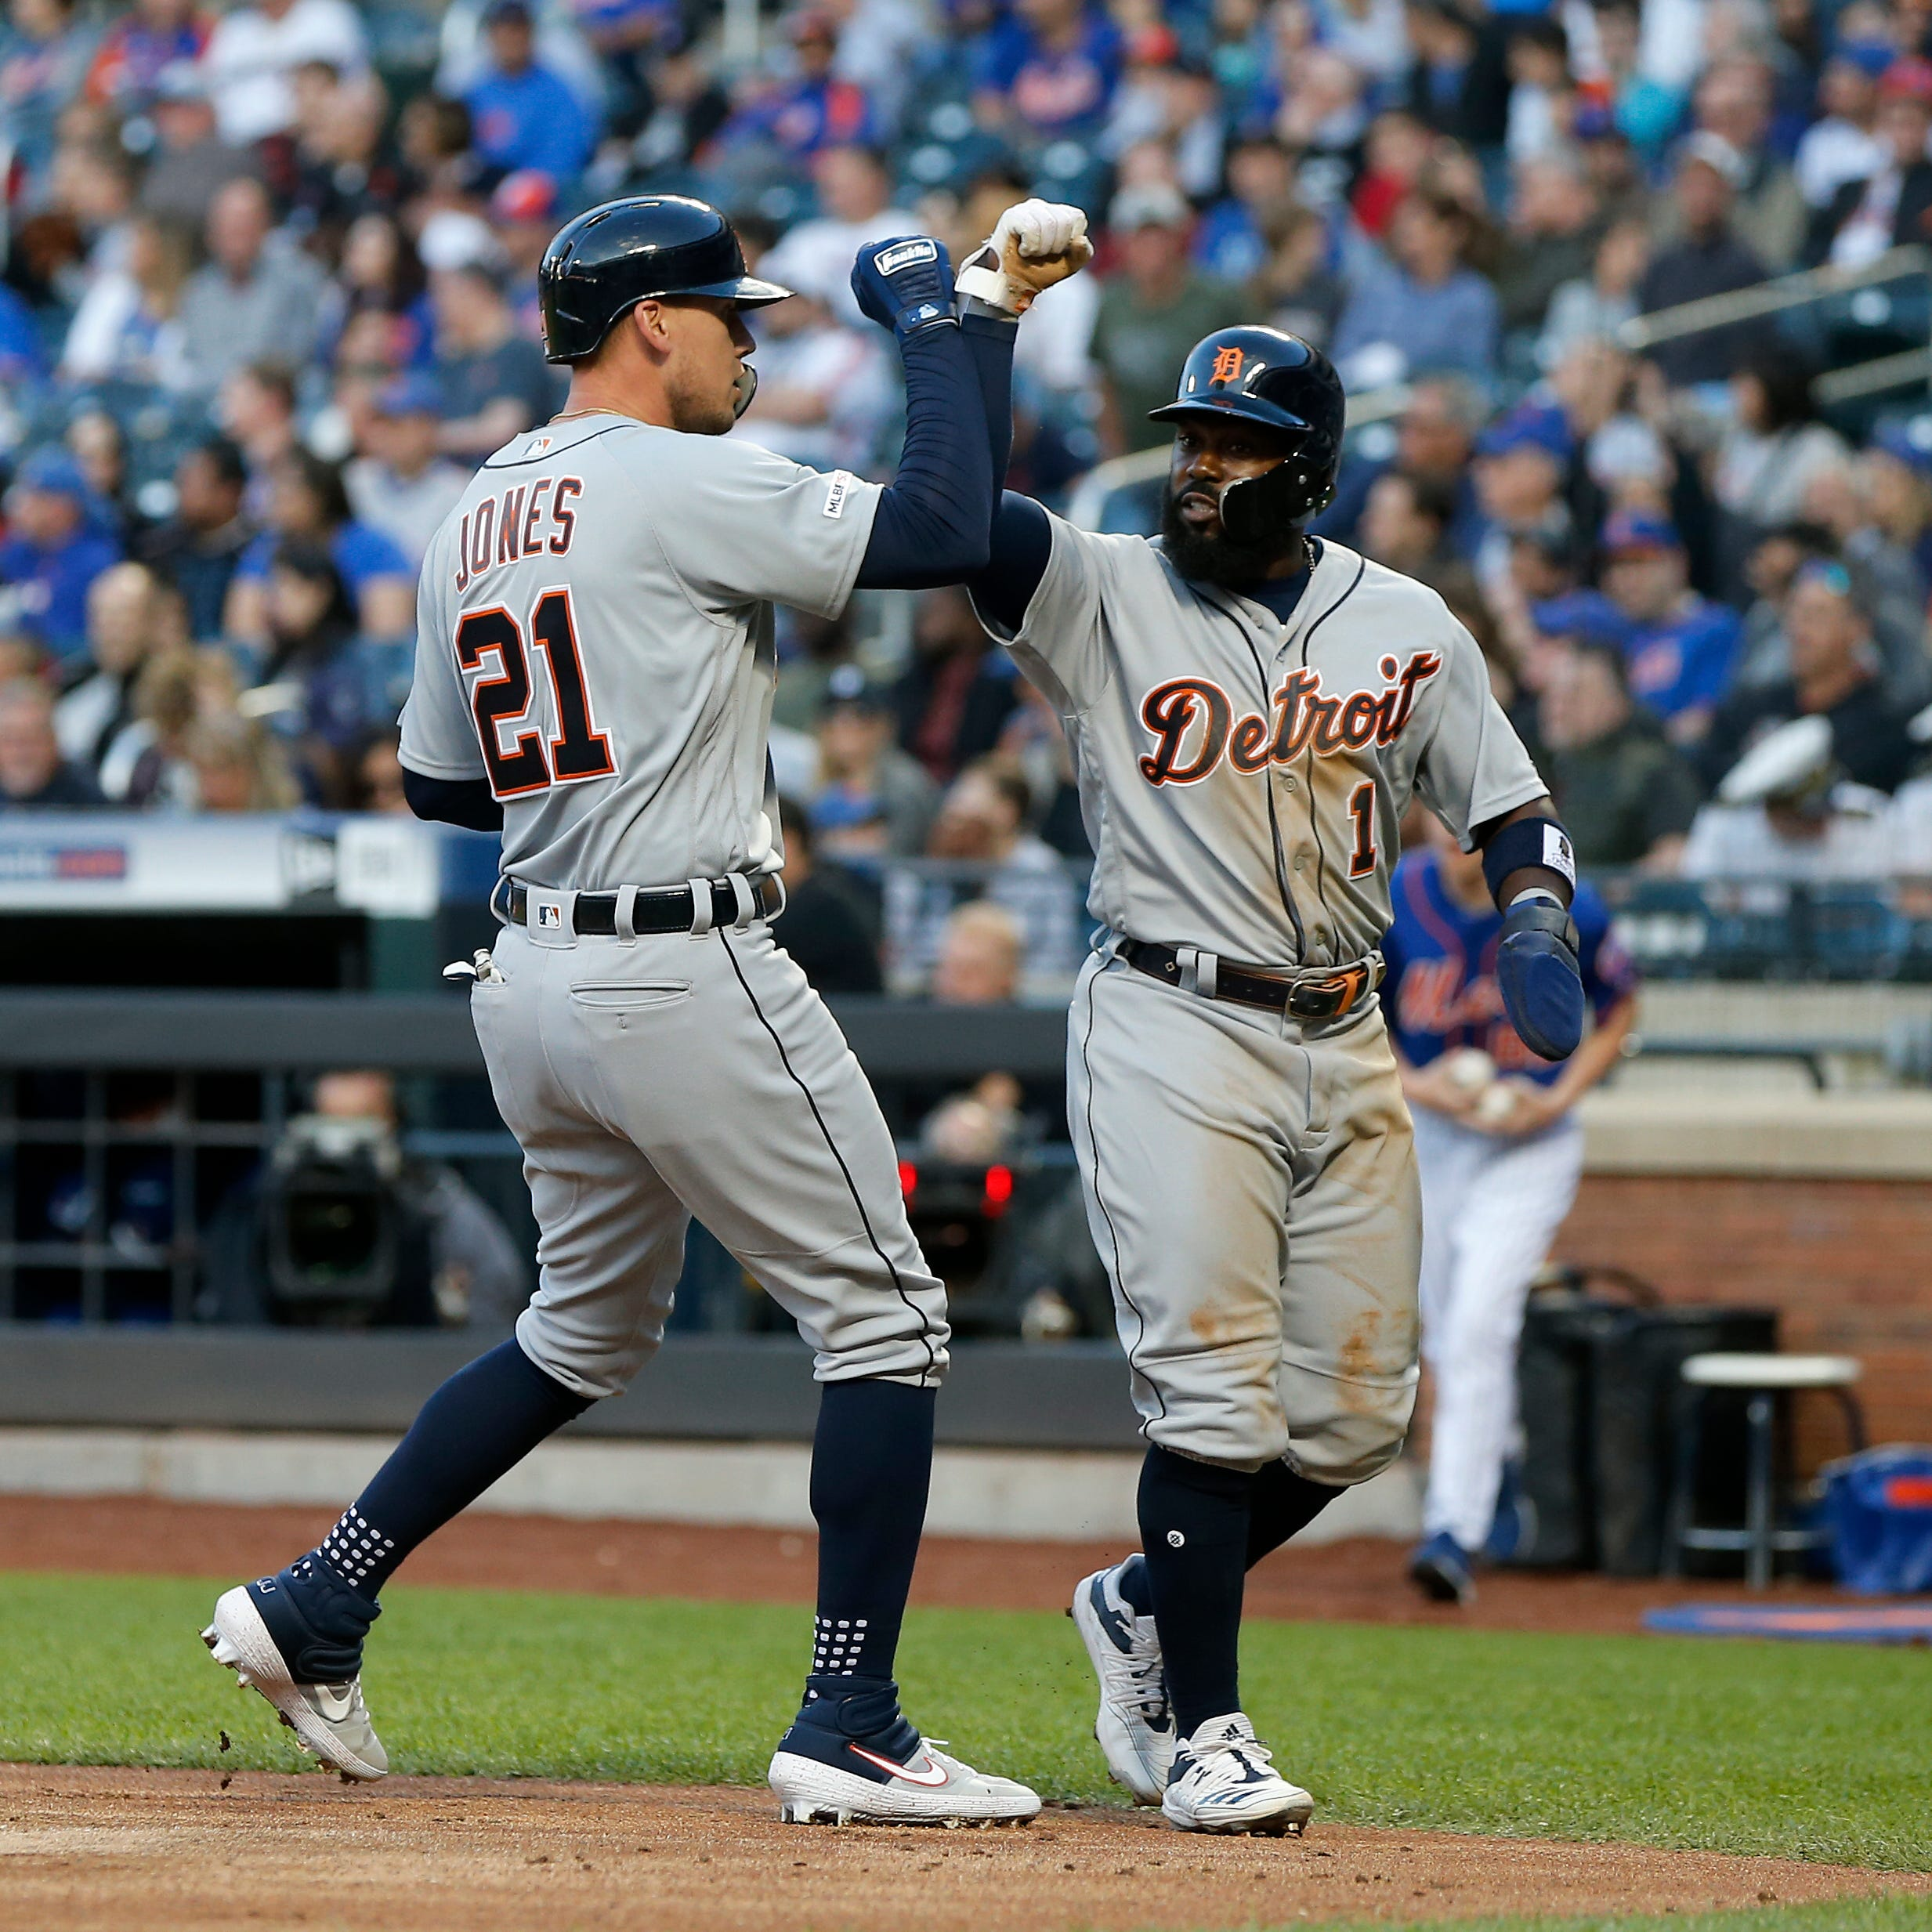 Detroit Tigers vs. New York Mets: Time, TV, starting pitchers